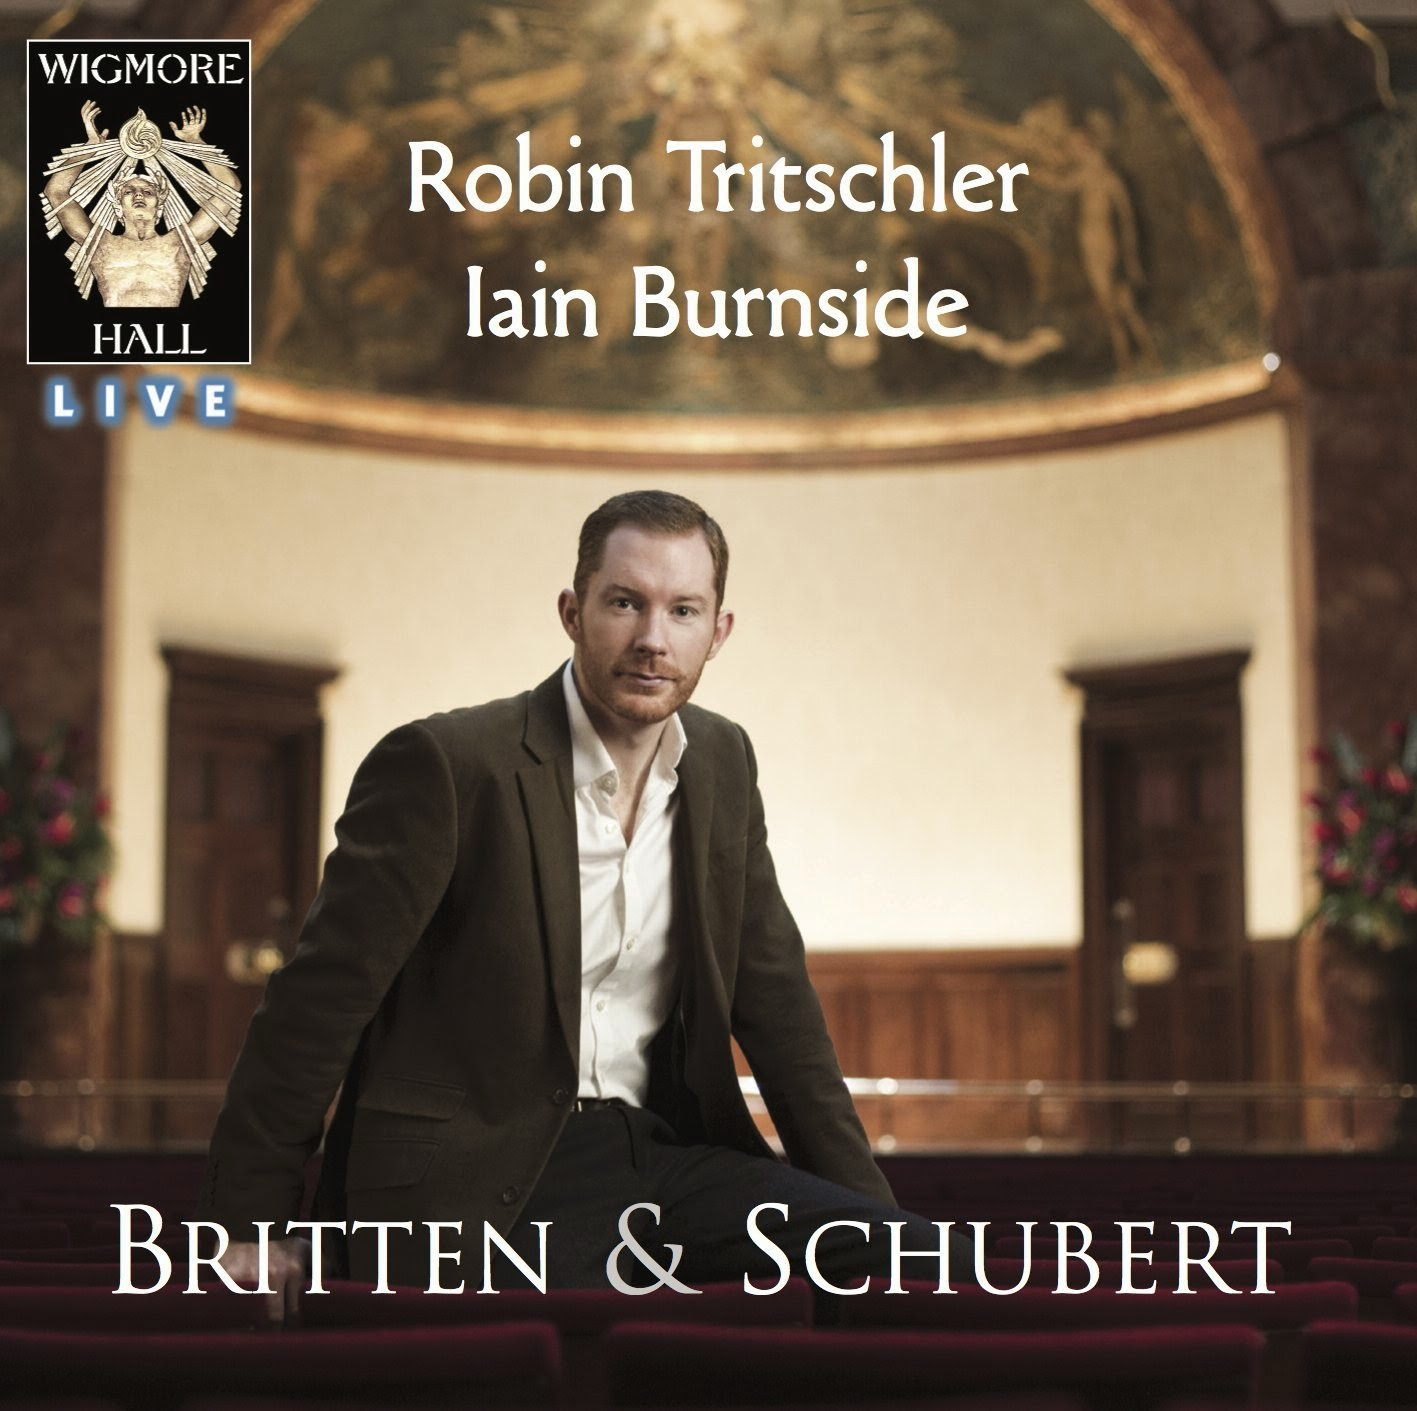 Robin Tritschler - Britten and Schubert